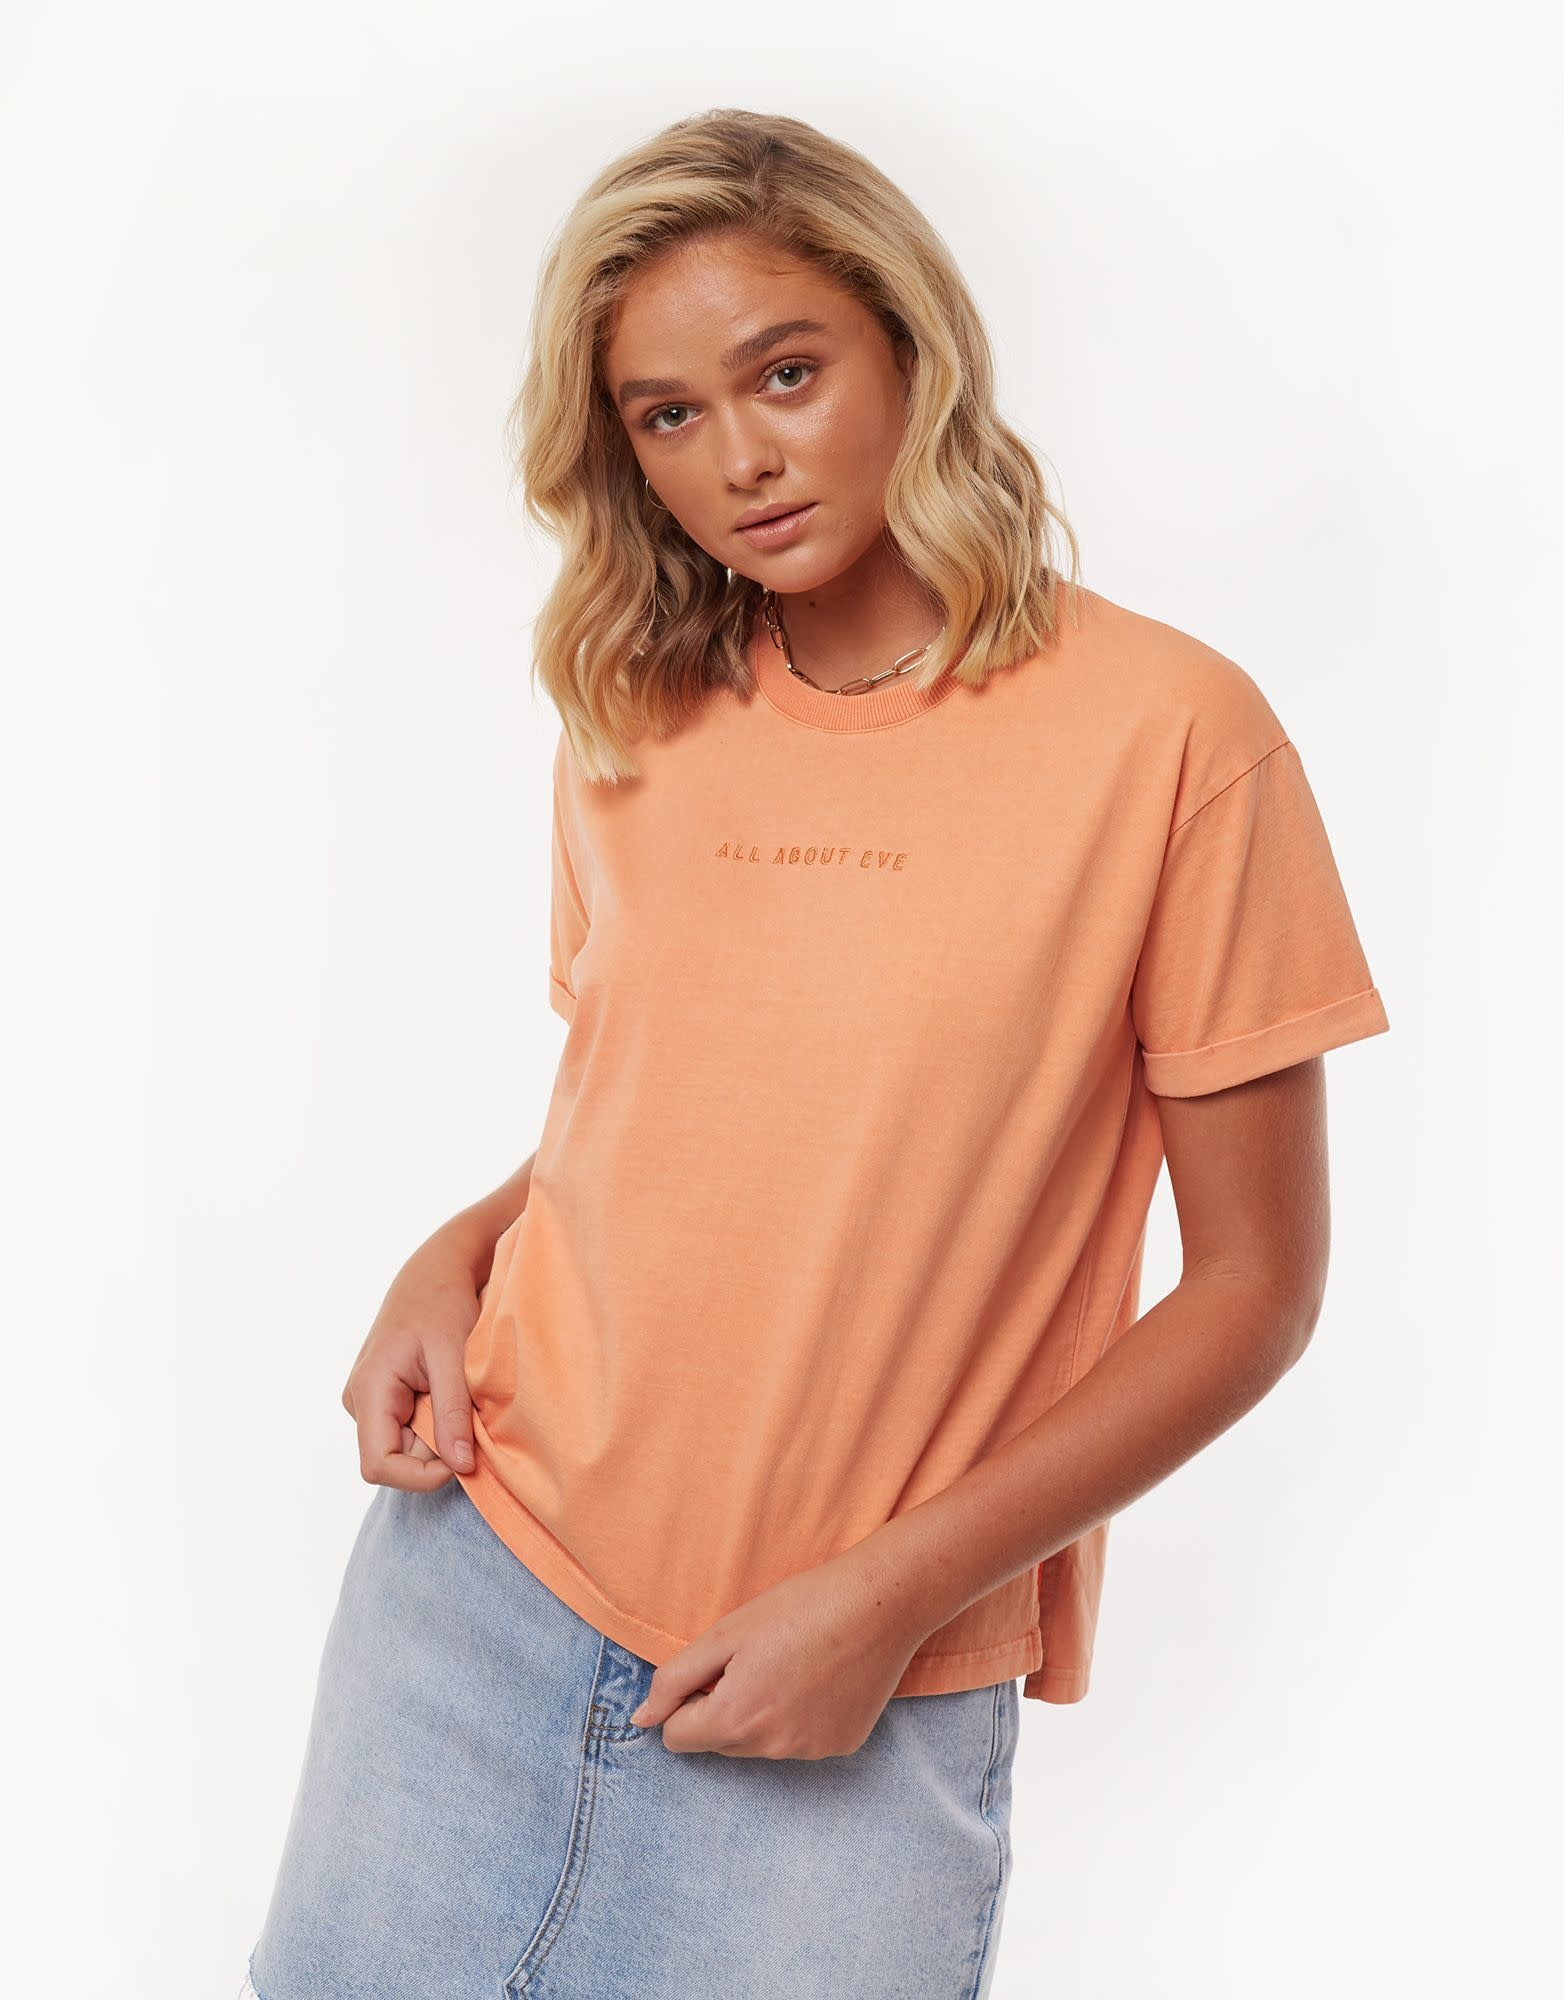 All About Eve Washed Tee AAE Peach